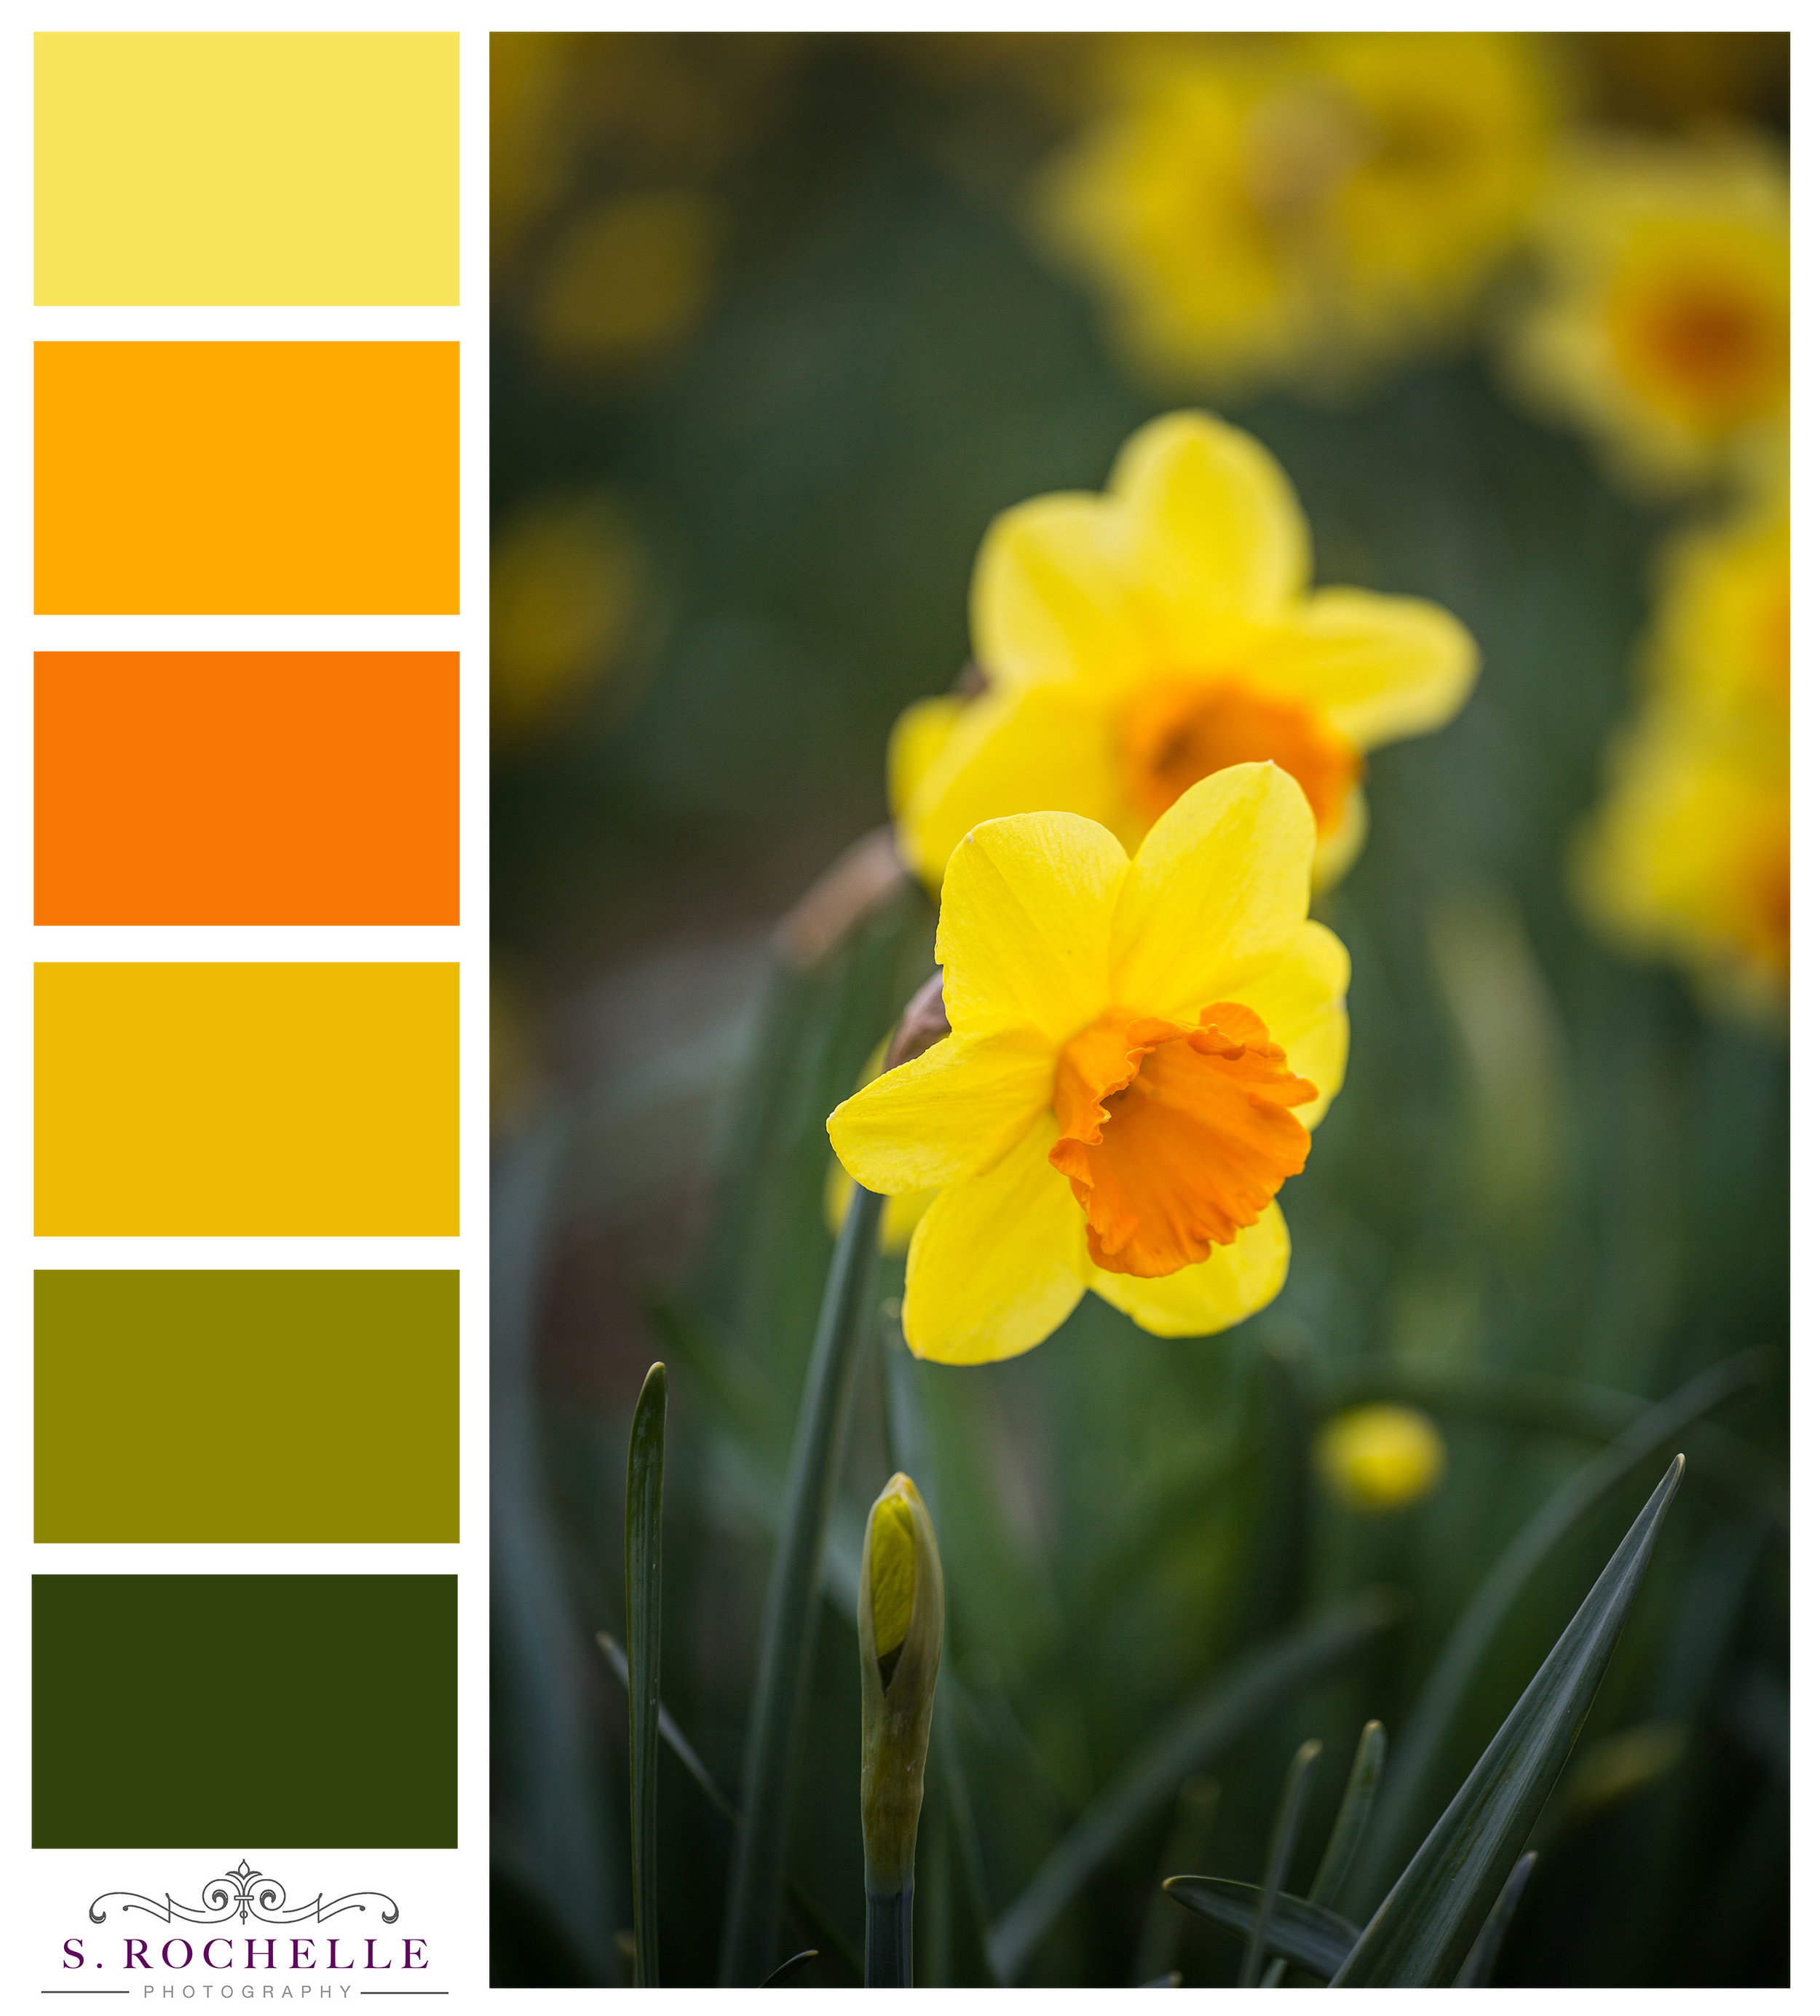 Daffodils_S_Rochelle_Photography_20180318_IMG_7133_ColorPalette.jpg